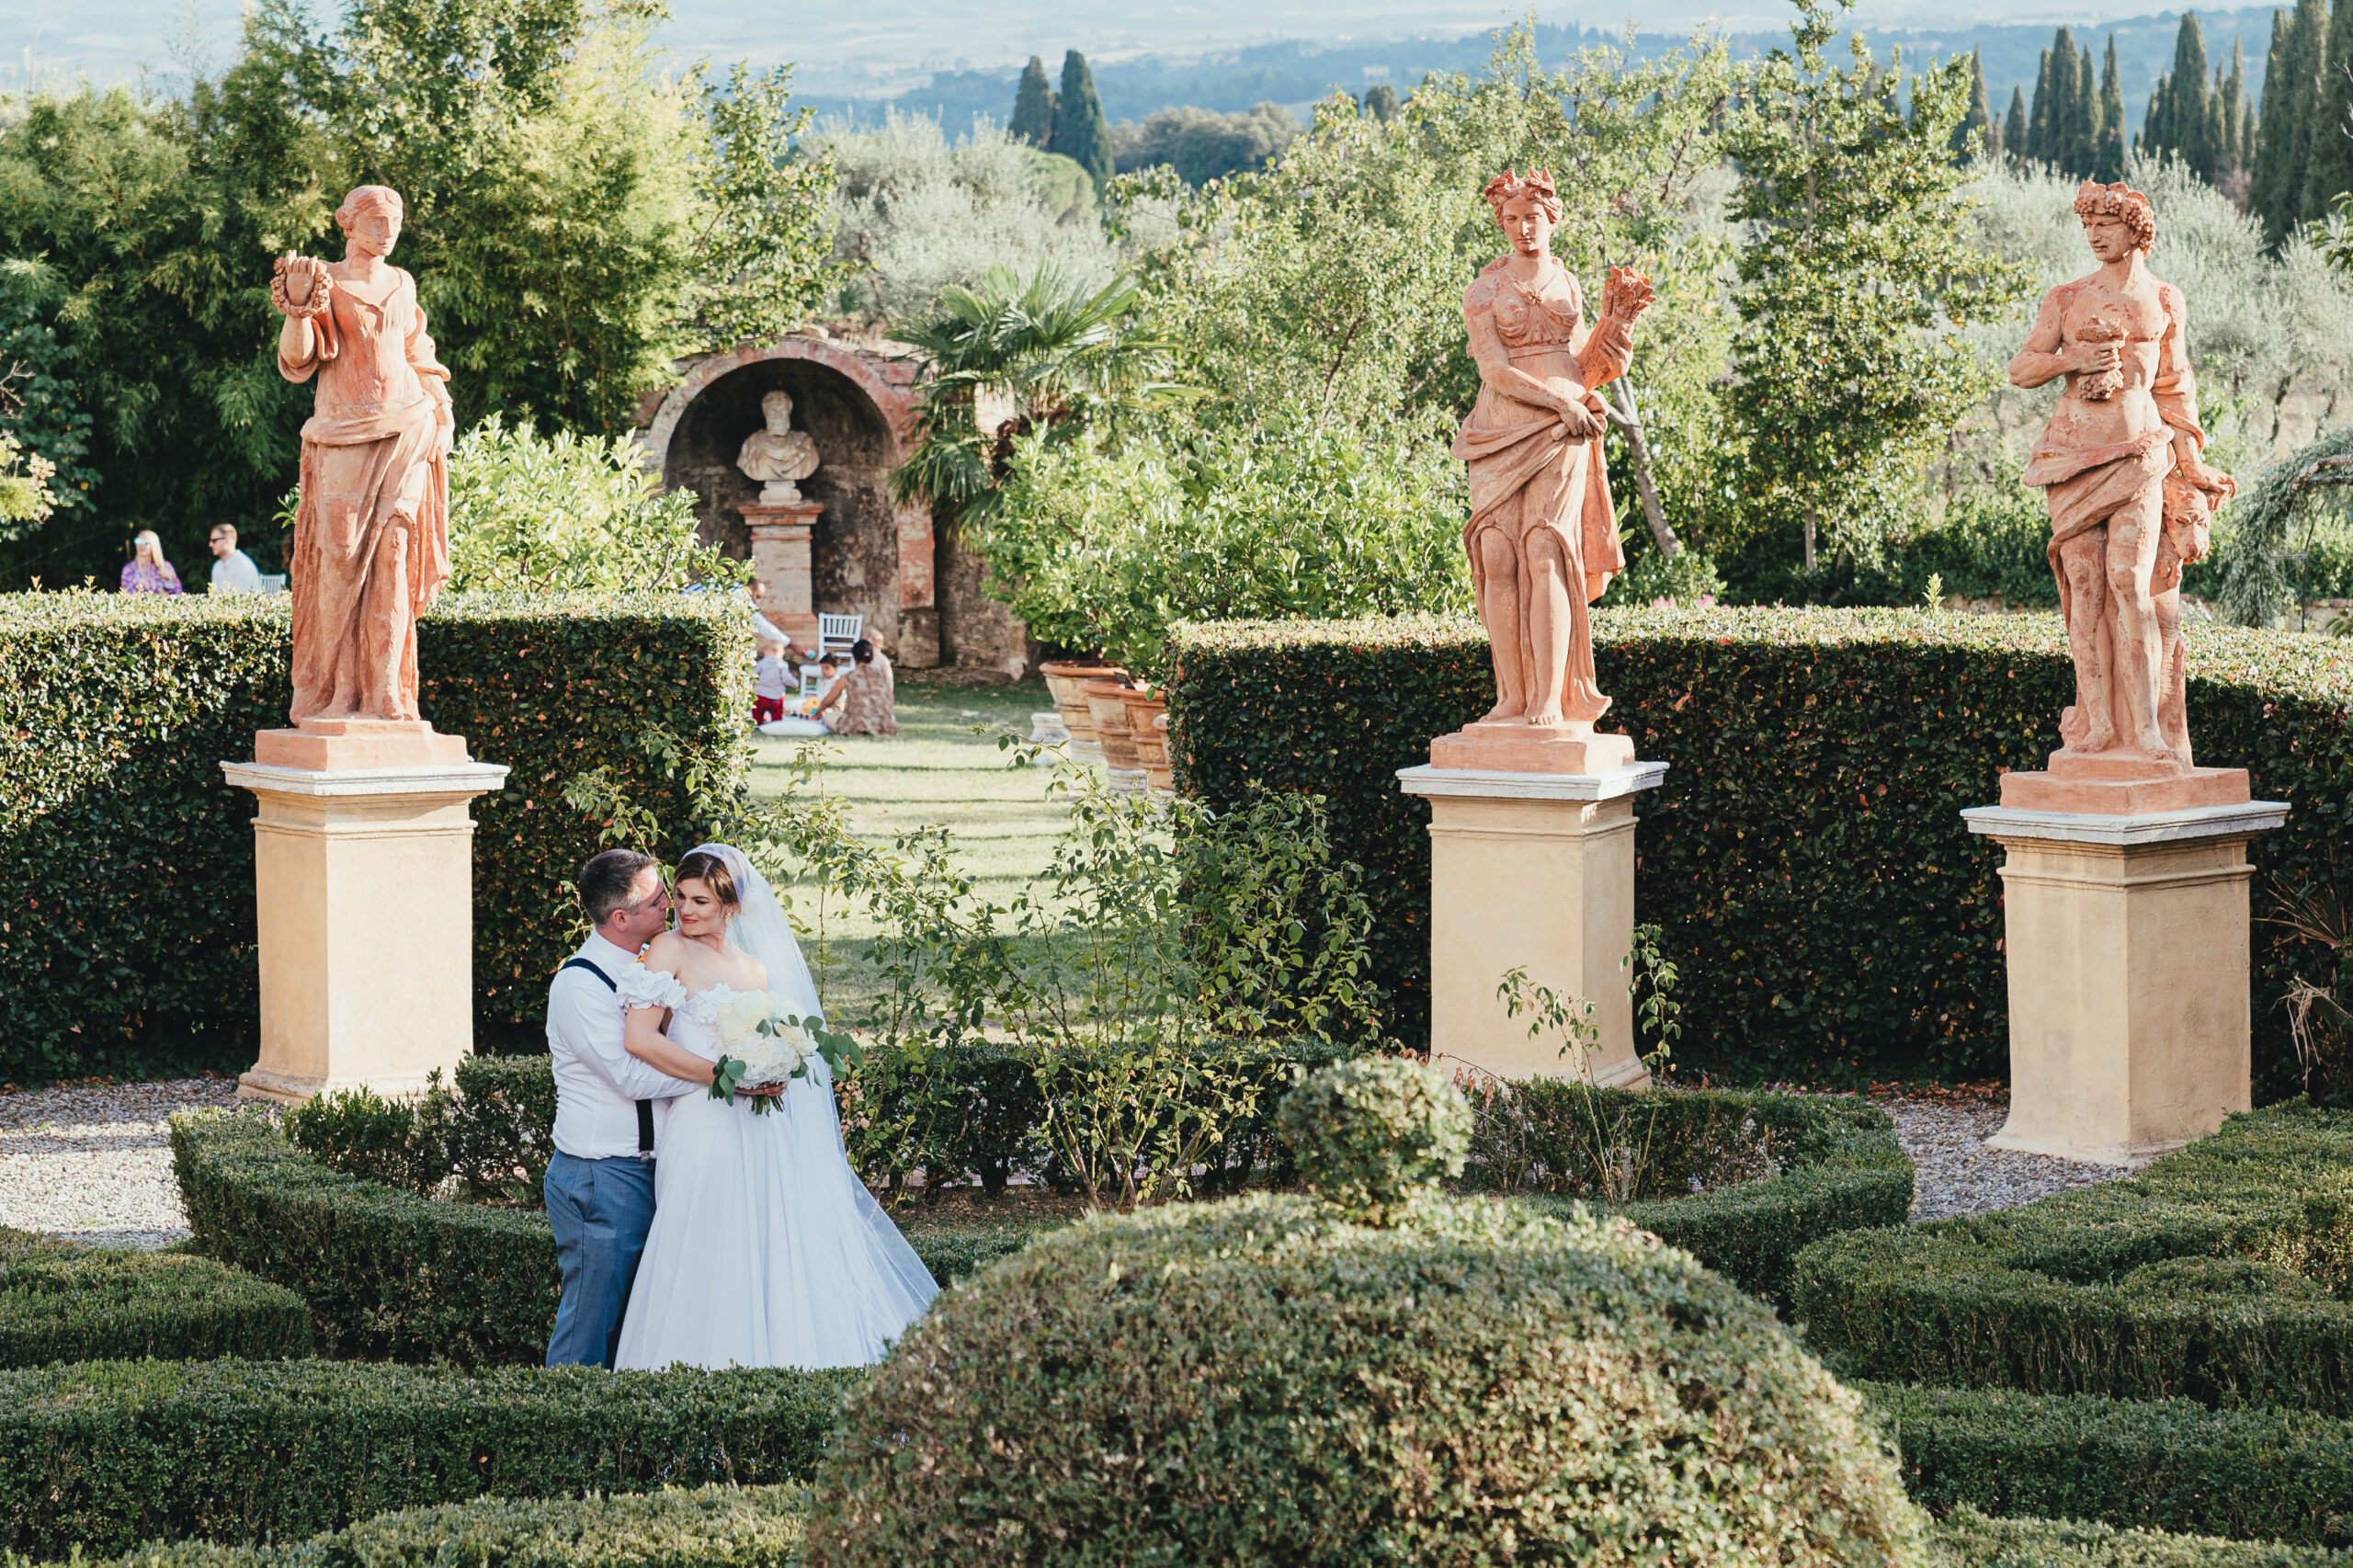 Rossini Wedding planners Umbria